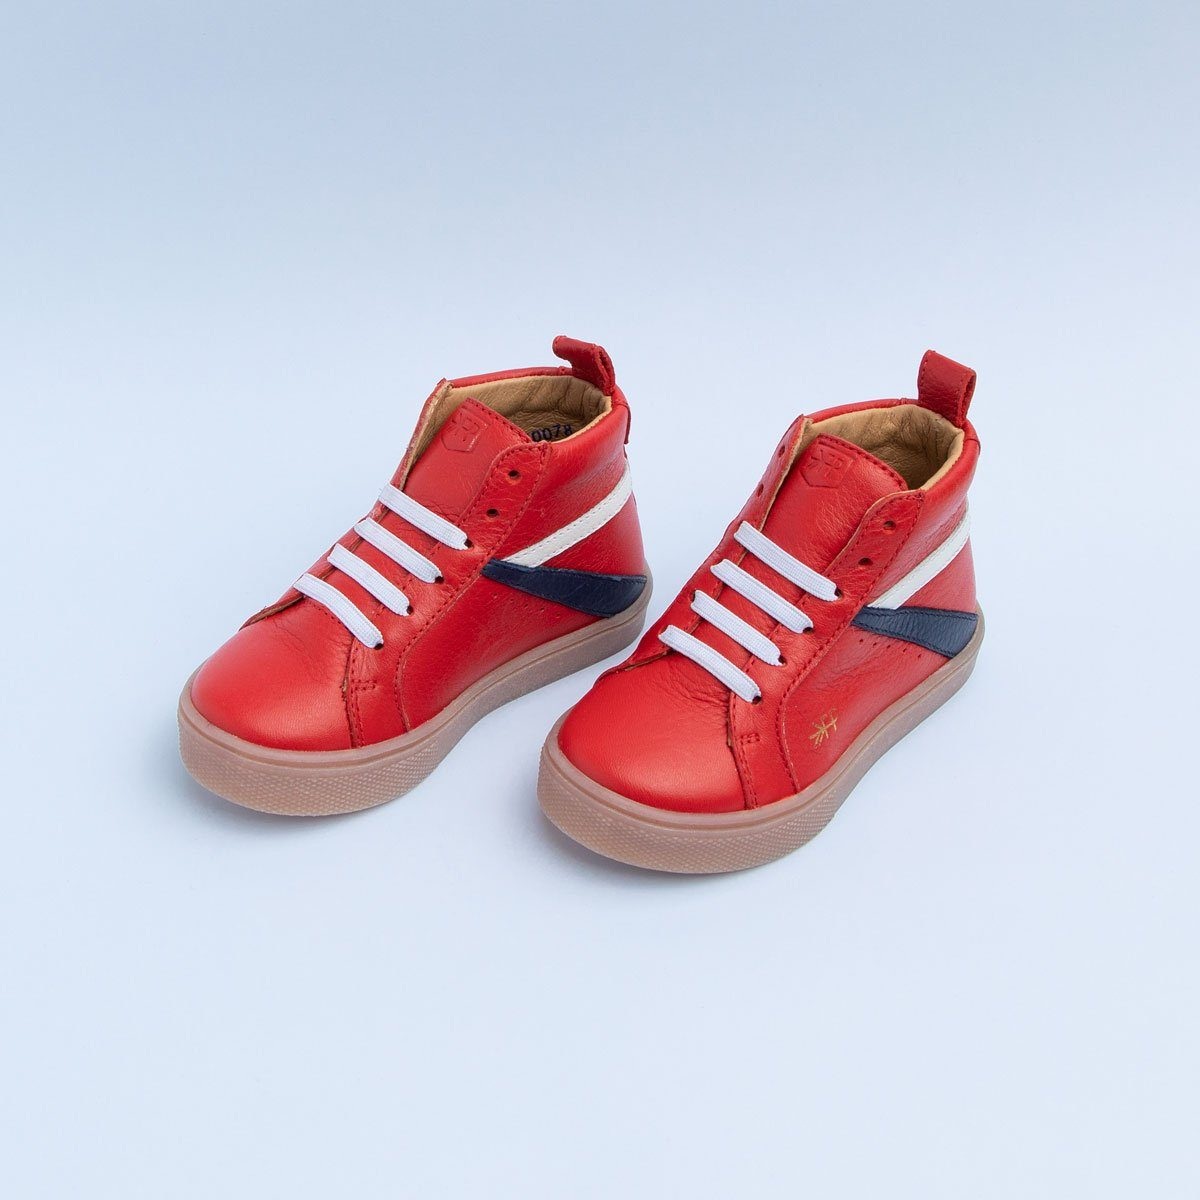 Cherry High Top Sneaker Kids - High Top Sneaker Kids Sneakers